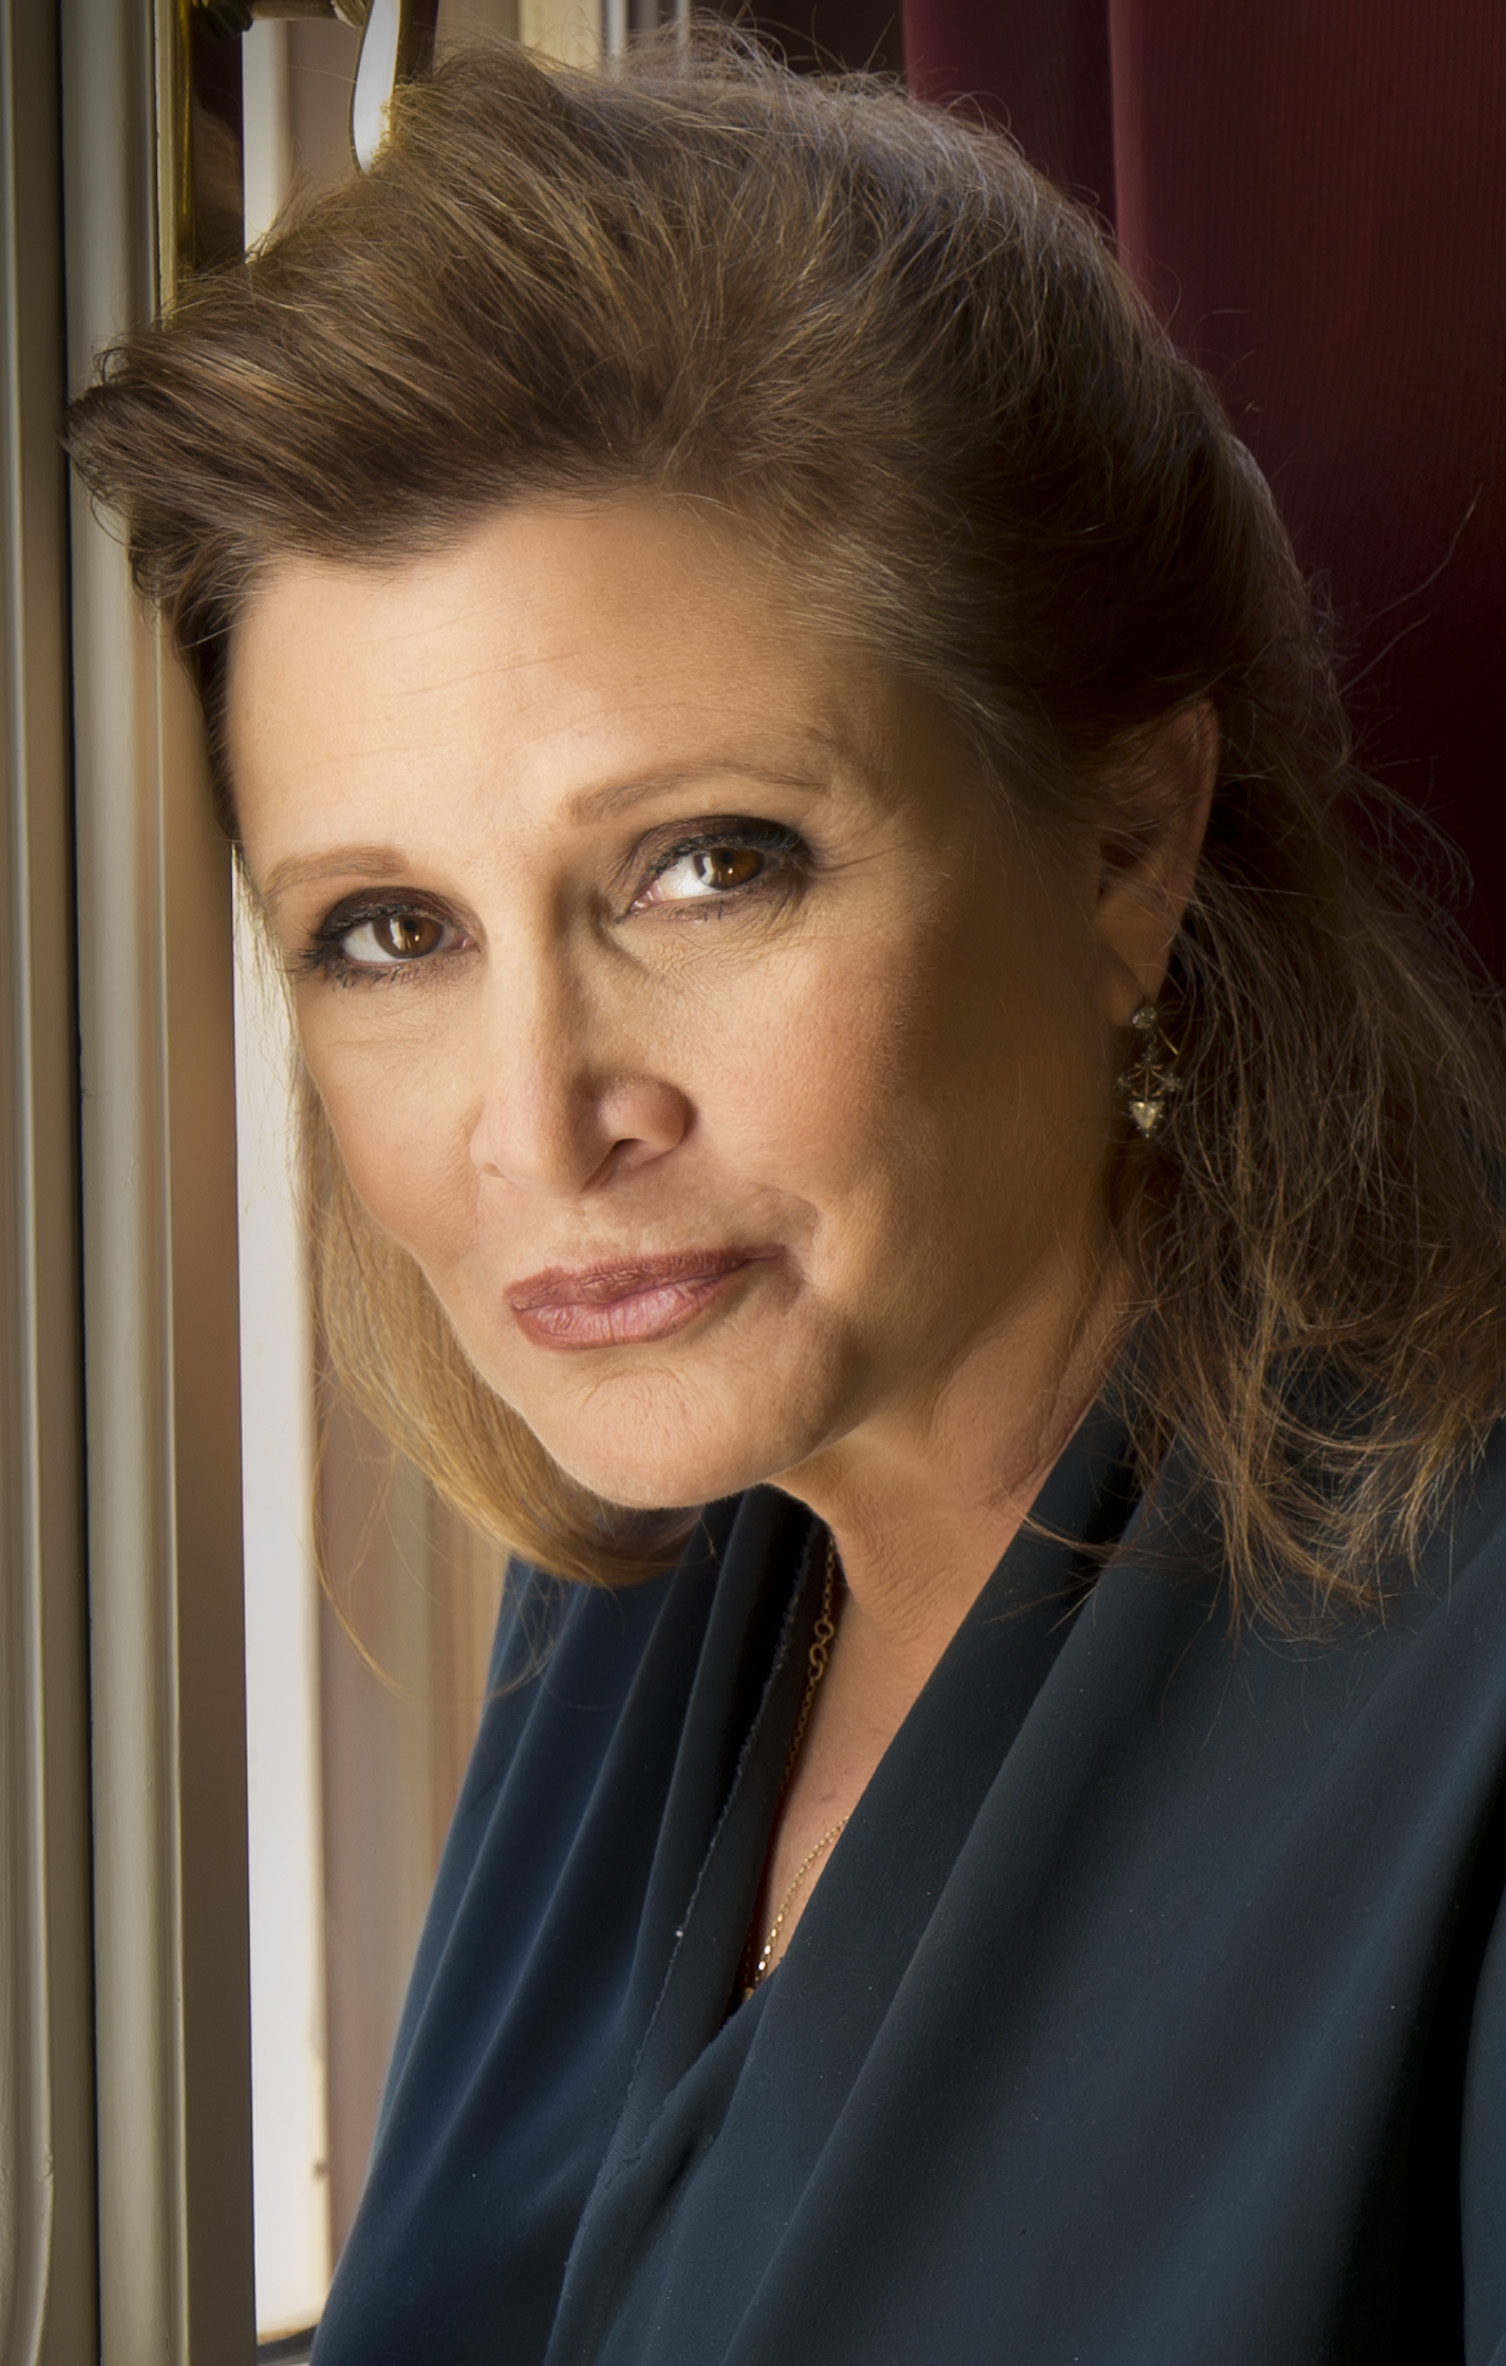 Carrie Fisher earned a  million dollar salary, leaving the net worth at 5 million in 2017